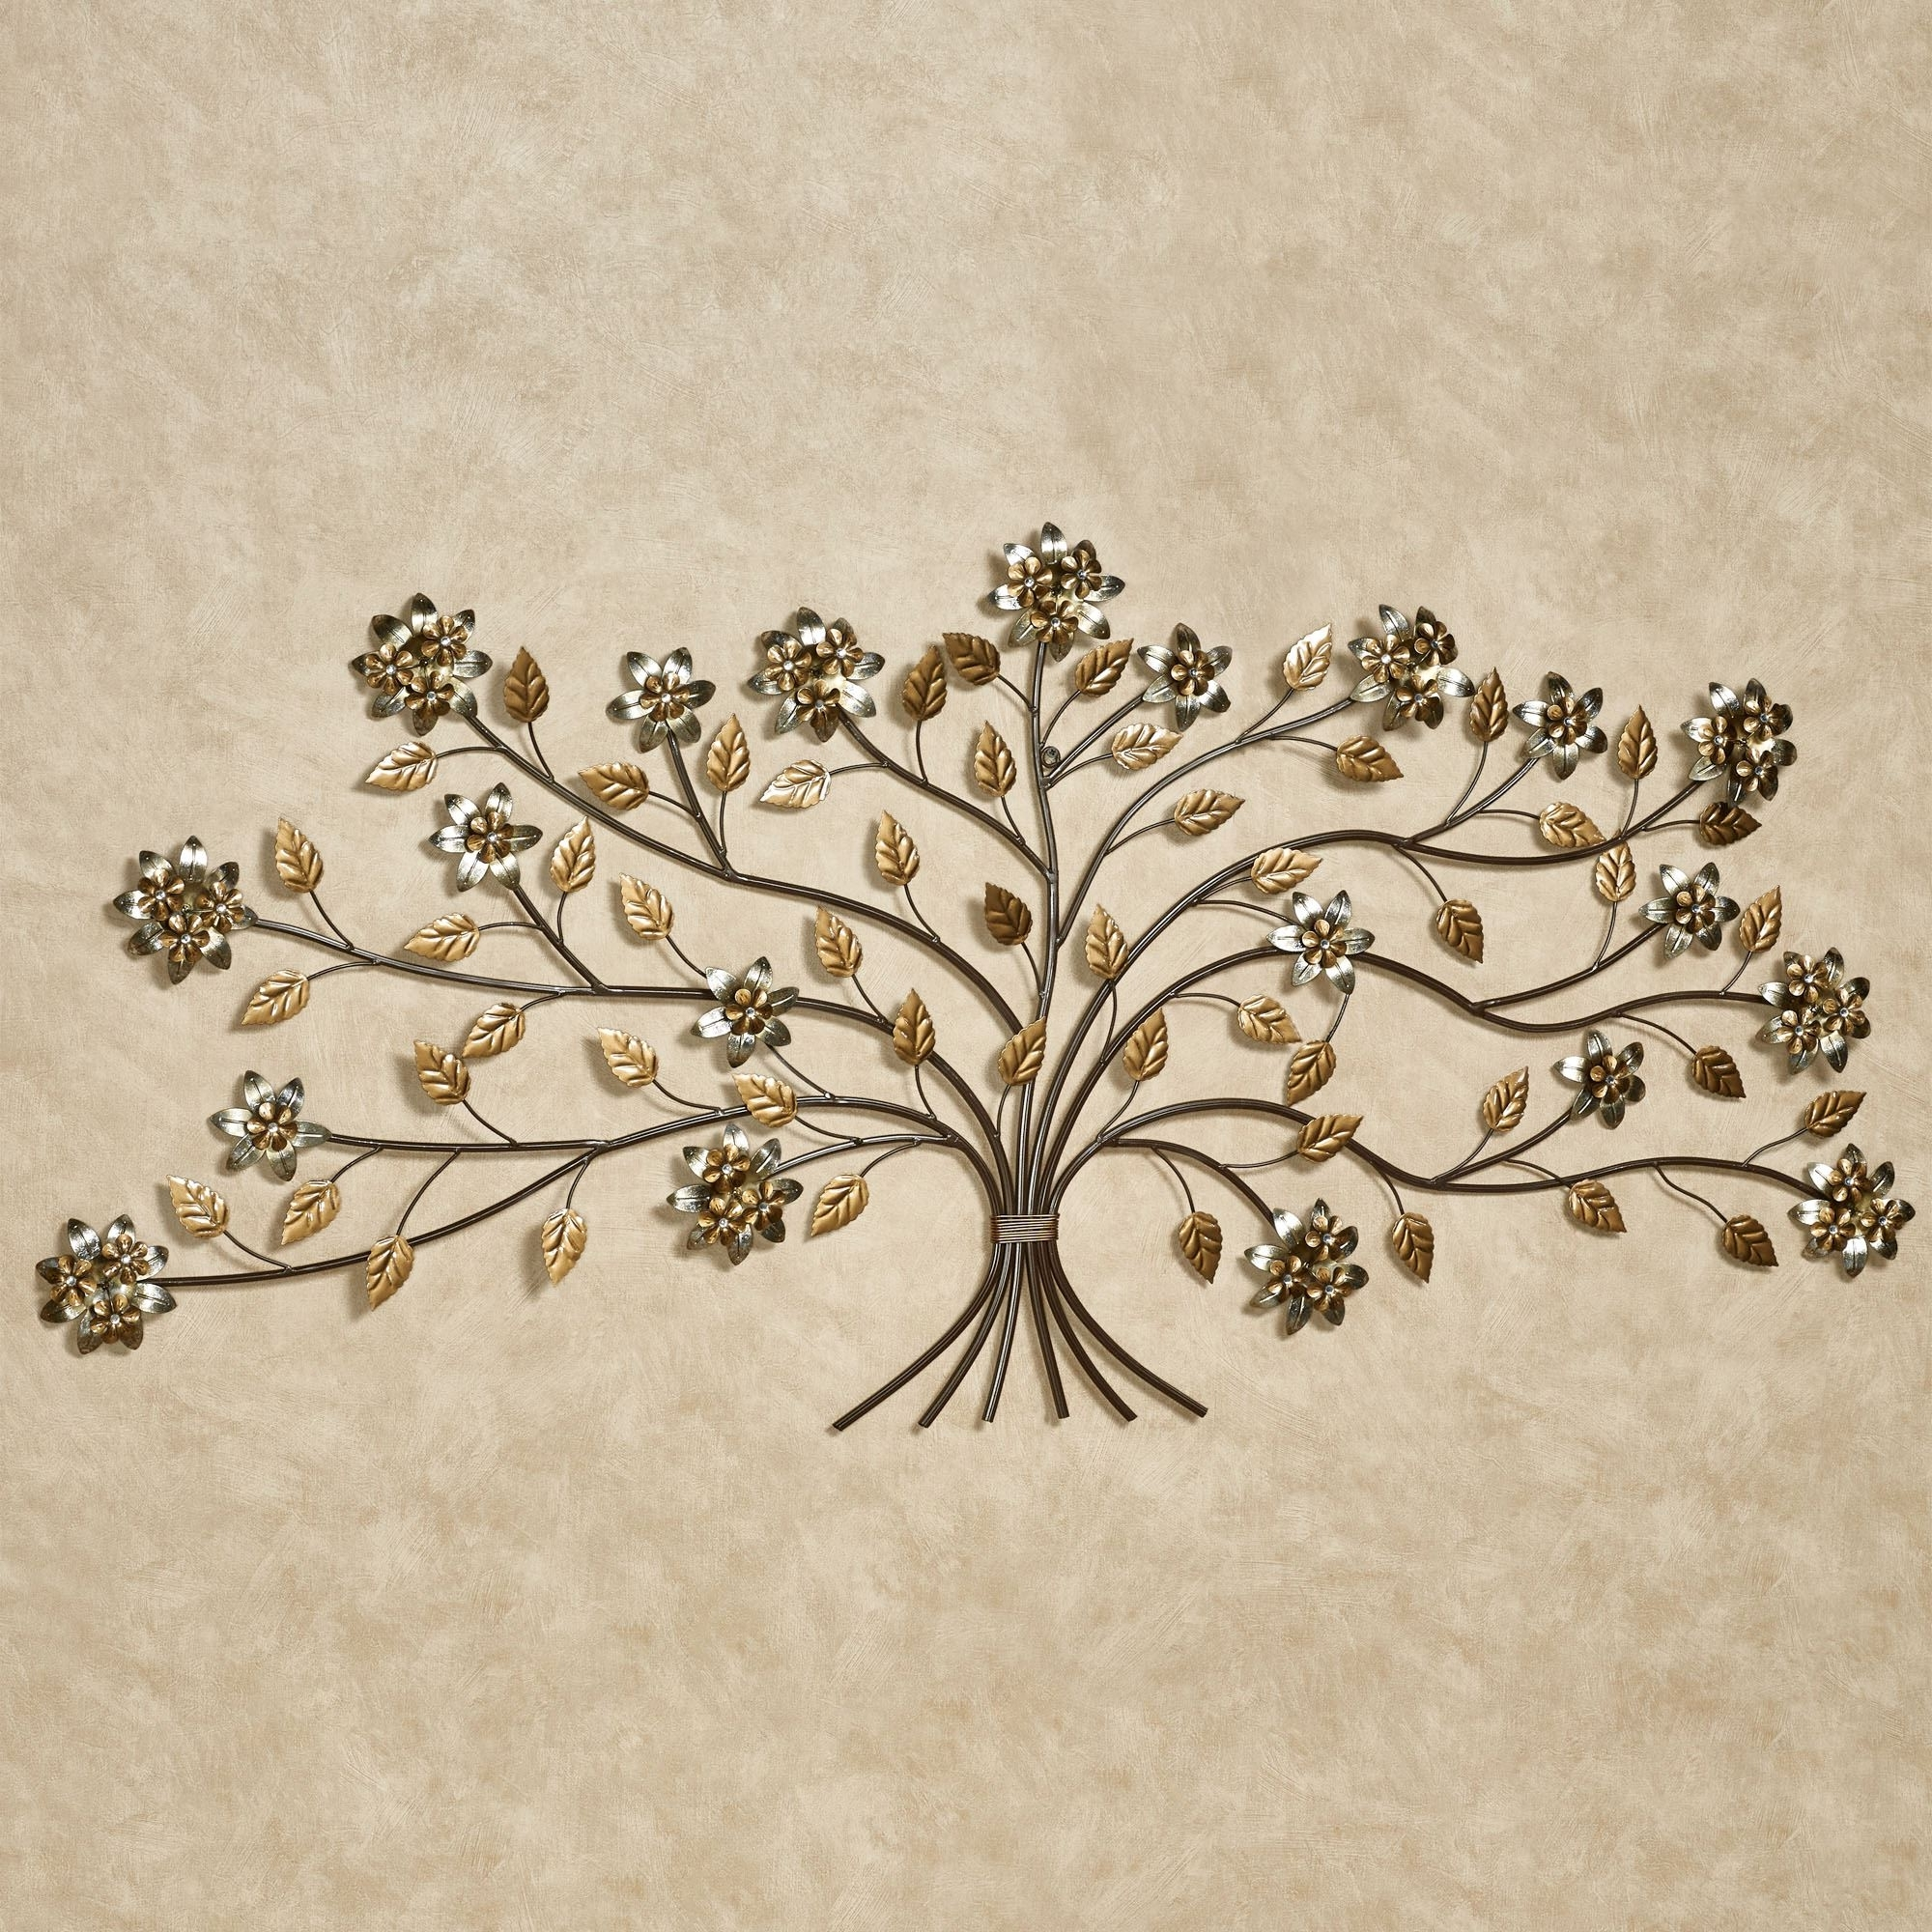 Most Current Touch Of Class Metal Wall Art With Regard To Metal Wall Art Sculptures (View 8 of 15)